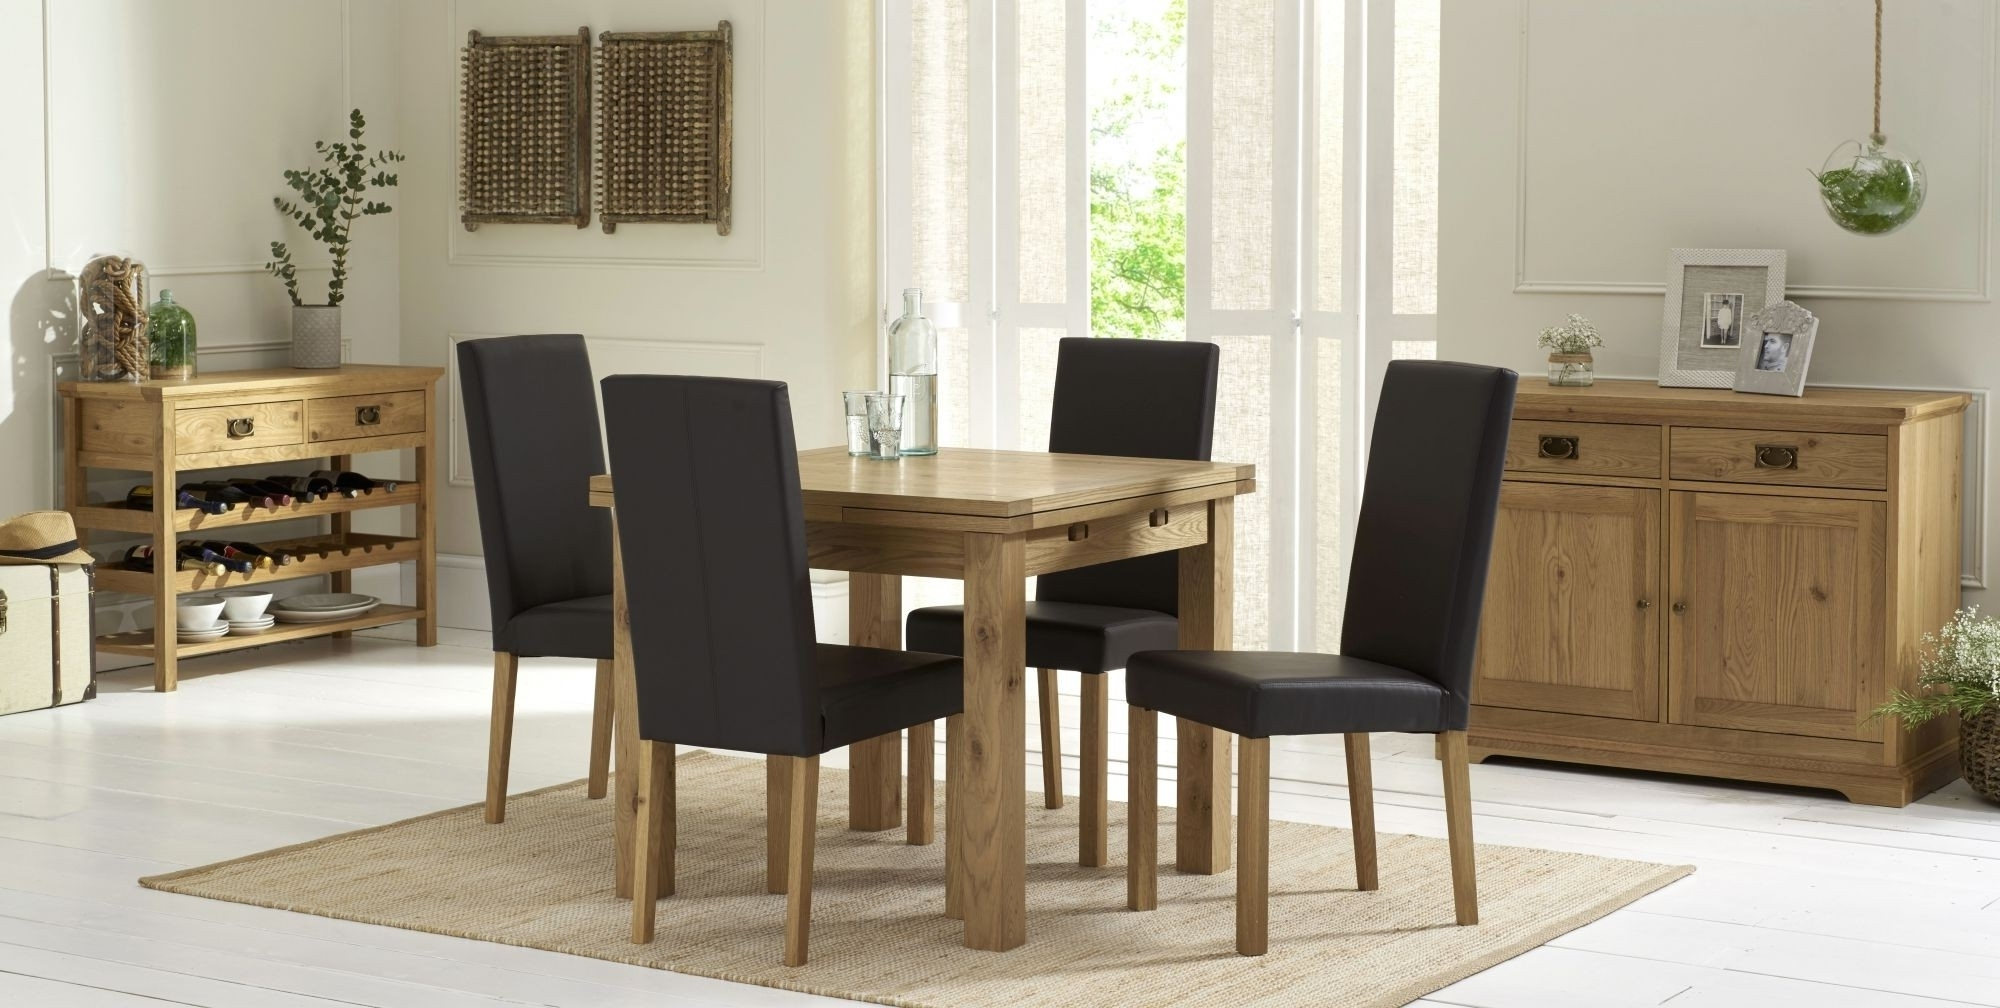 Well Liked Provence Oak 2 4 Seater Extending Dining Table – Style Our Home In 4 Seater Extendable Dining Tables (View 19 of 25)